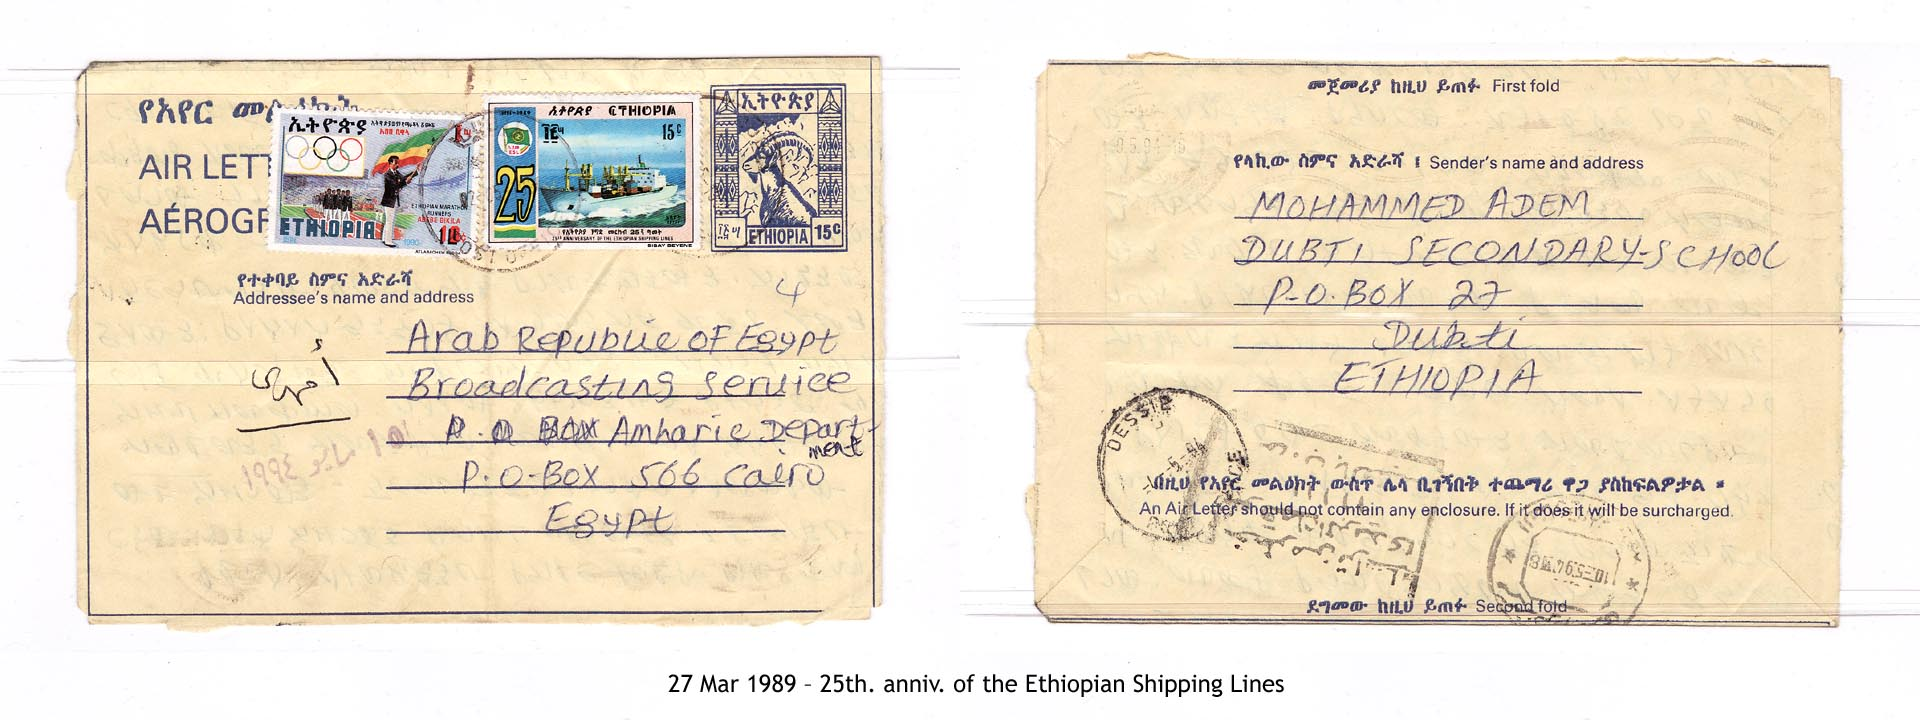 19890327 – 25th. anniv. of the Ethiopian Shipping Lines